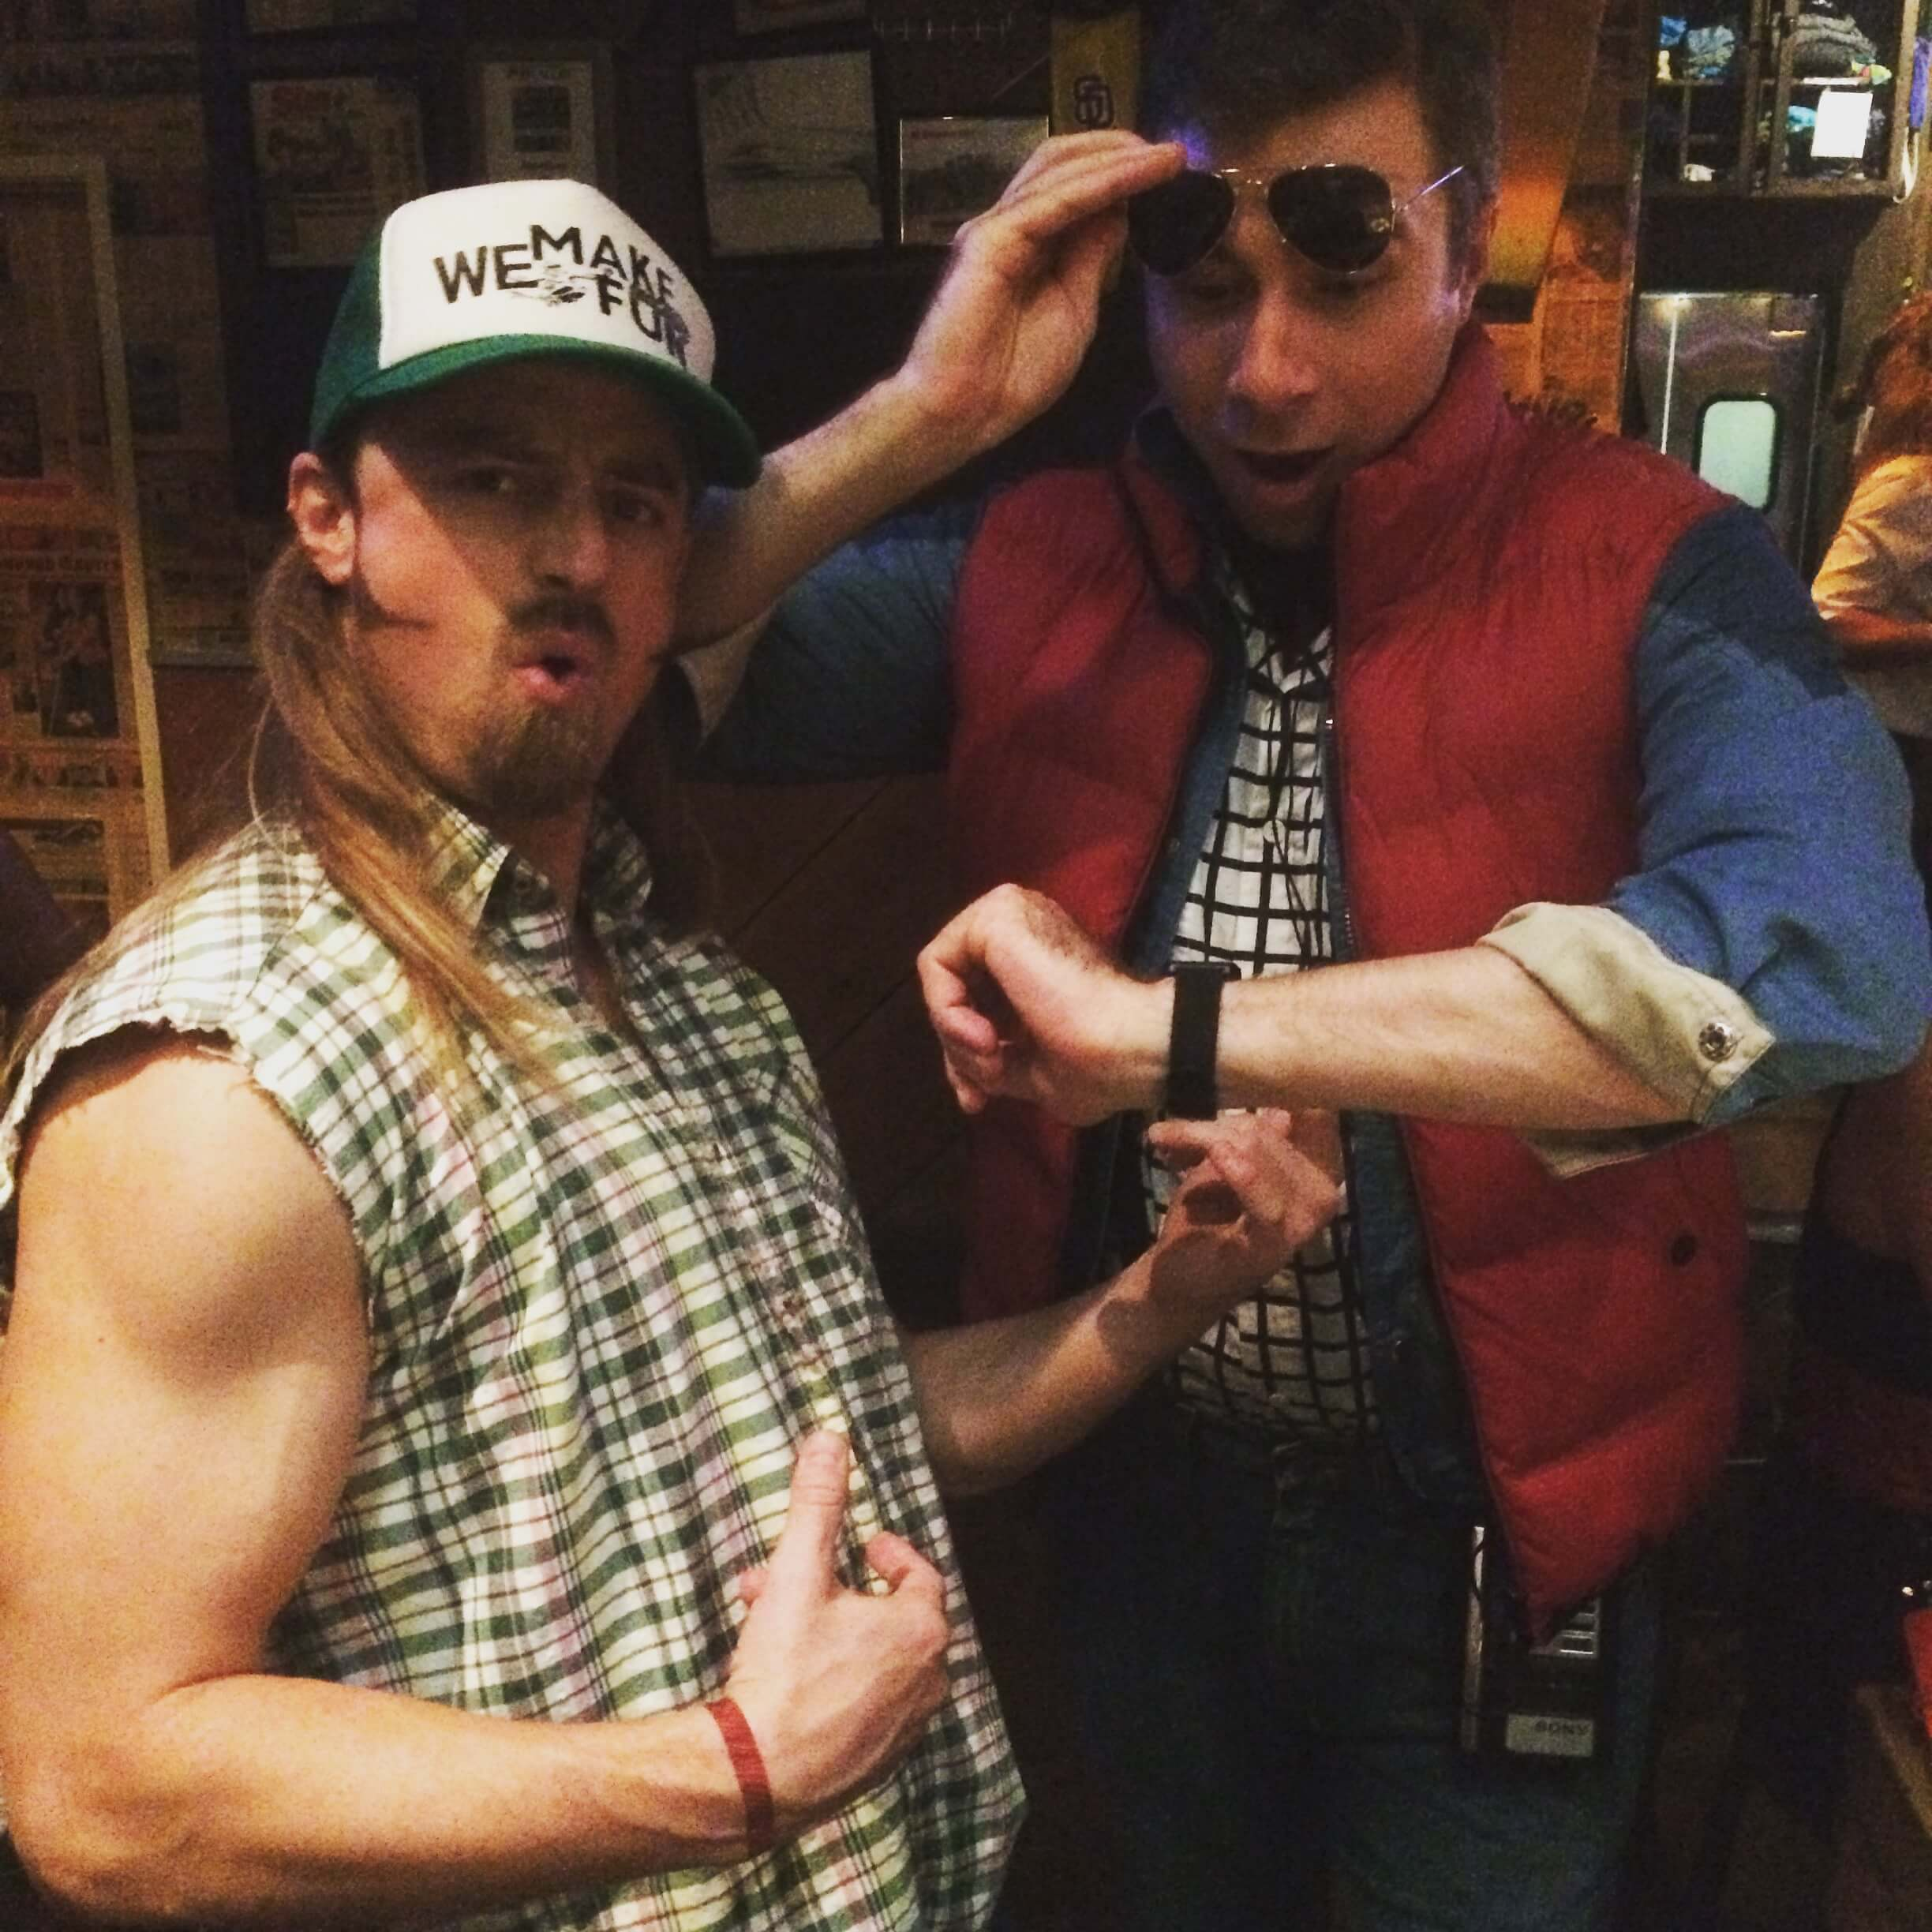 Halloween Costumes For Men With Long Hair - Joe Dirt